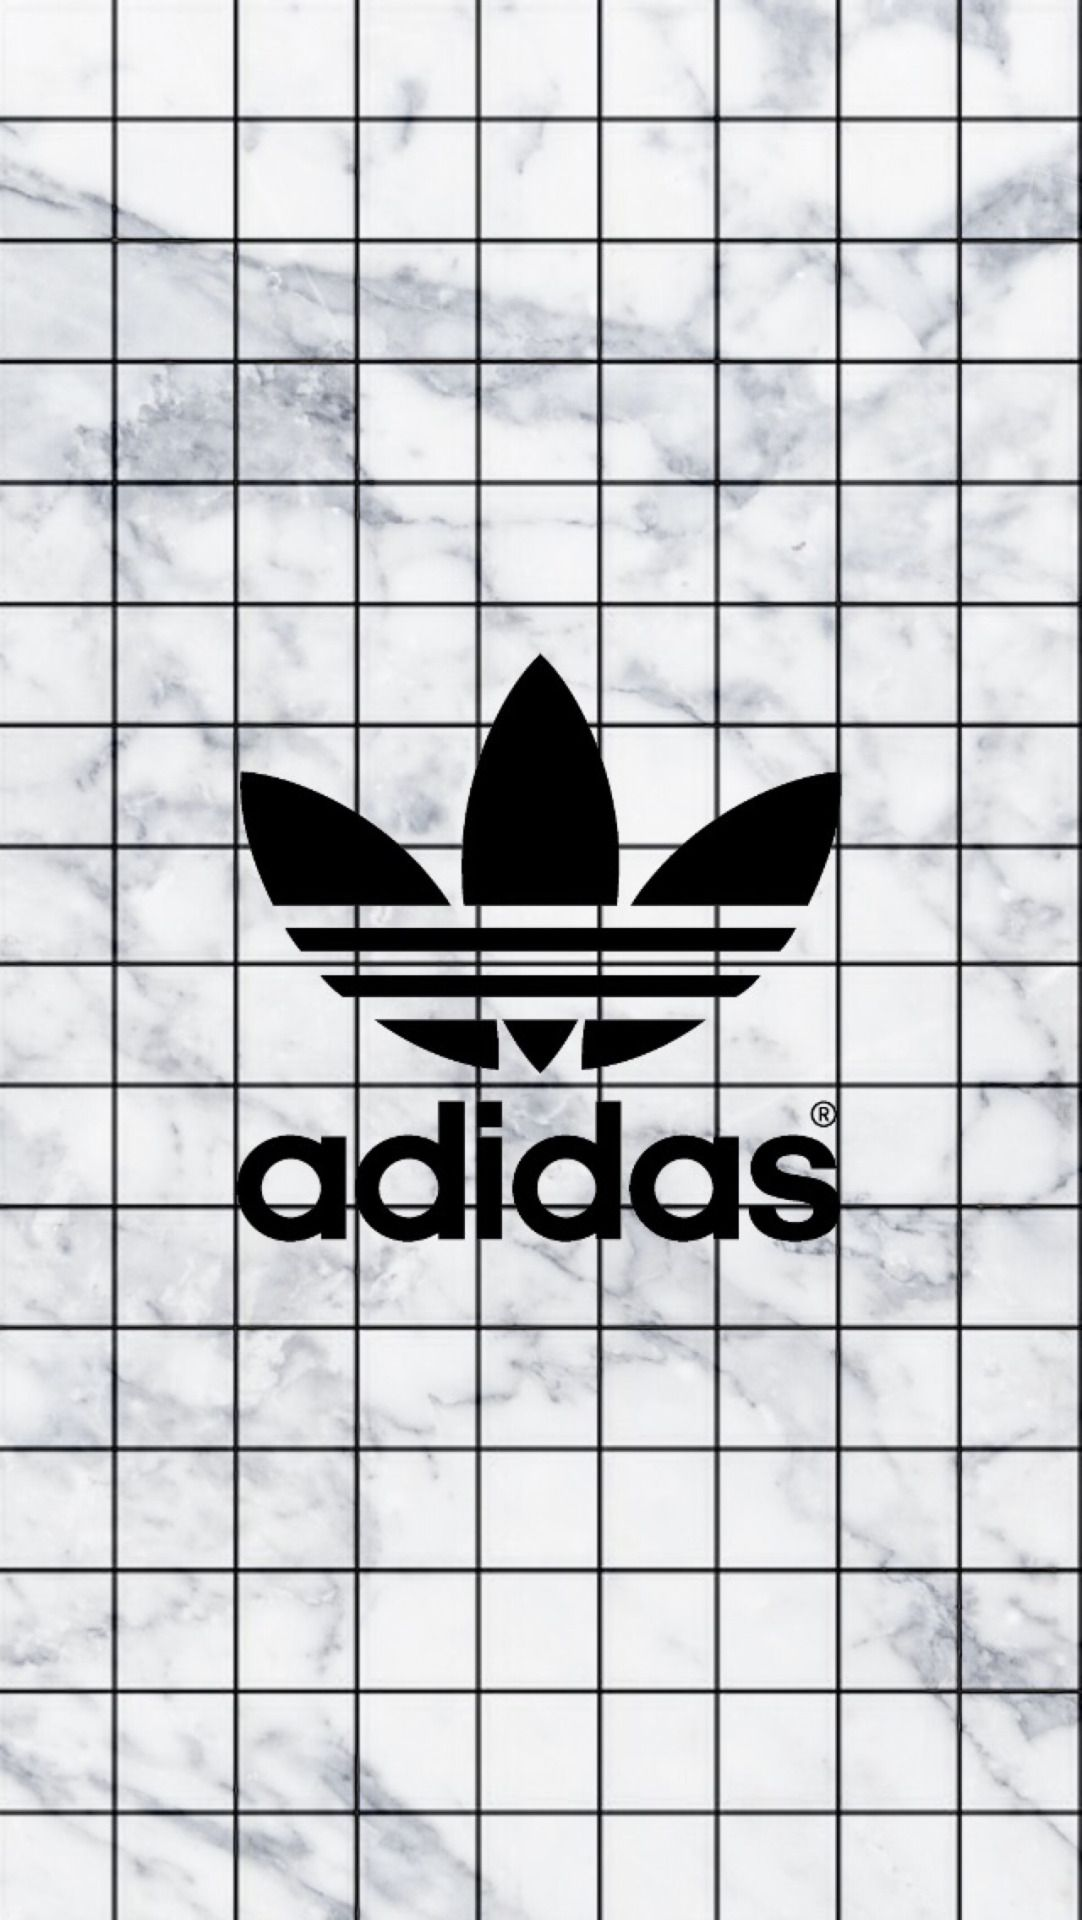 Tumblr iphone wallpaper grunge - Adidas Wallpaper Tumblr M S